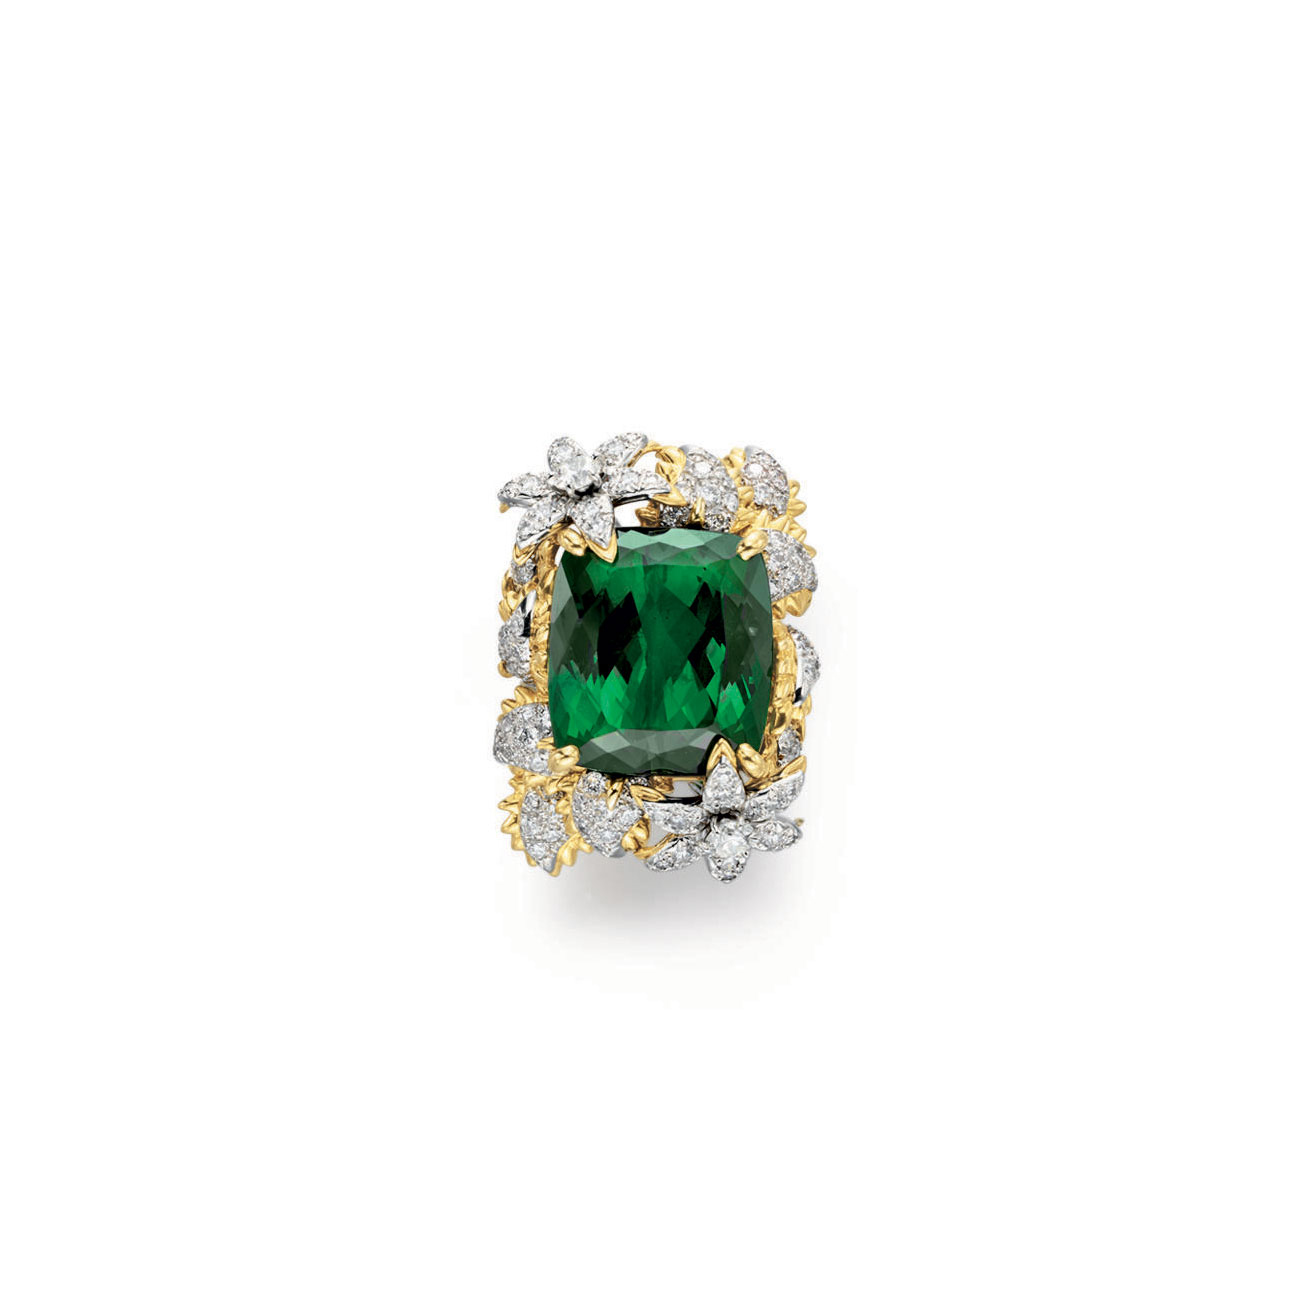 A GREEN TOURMALINE AND DIAMOND RING, BY BIELKA